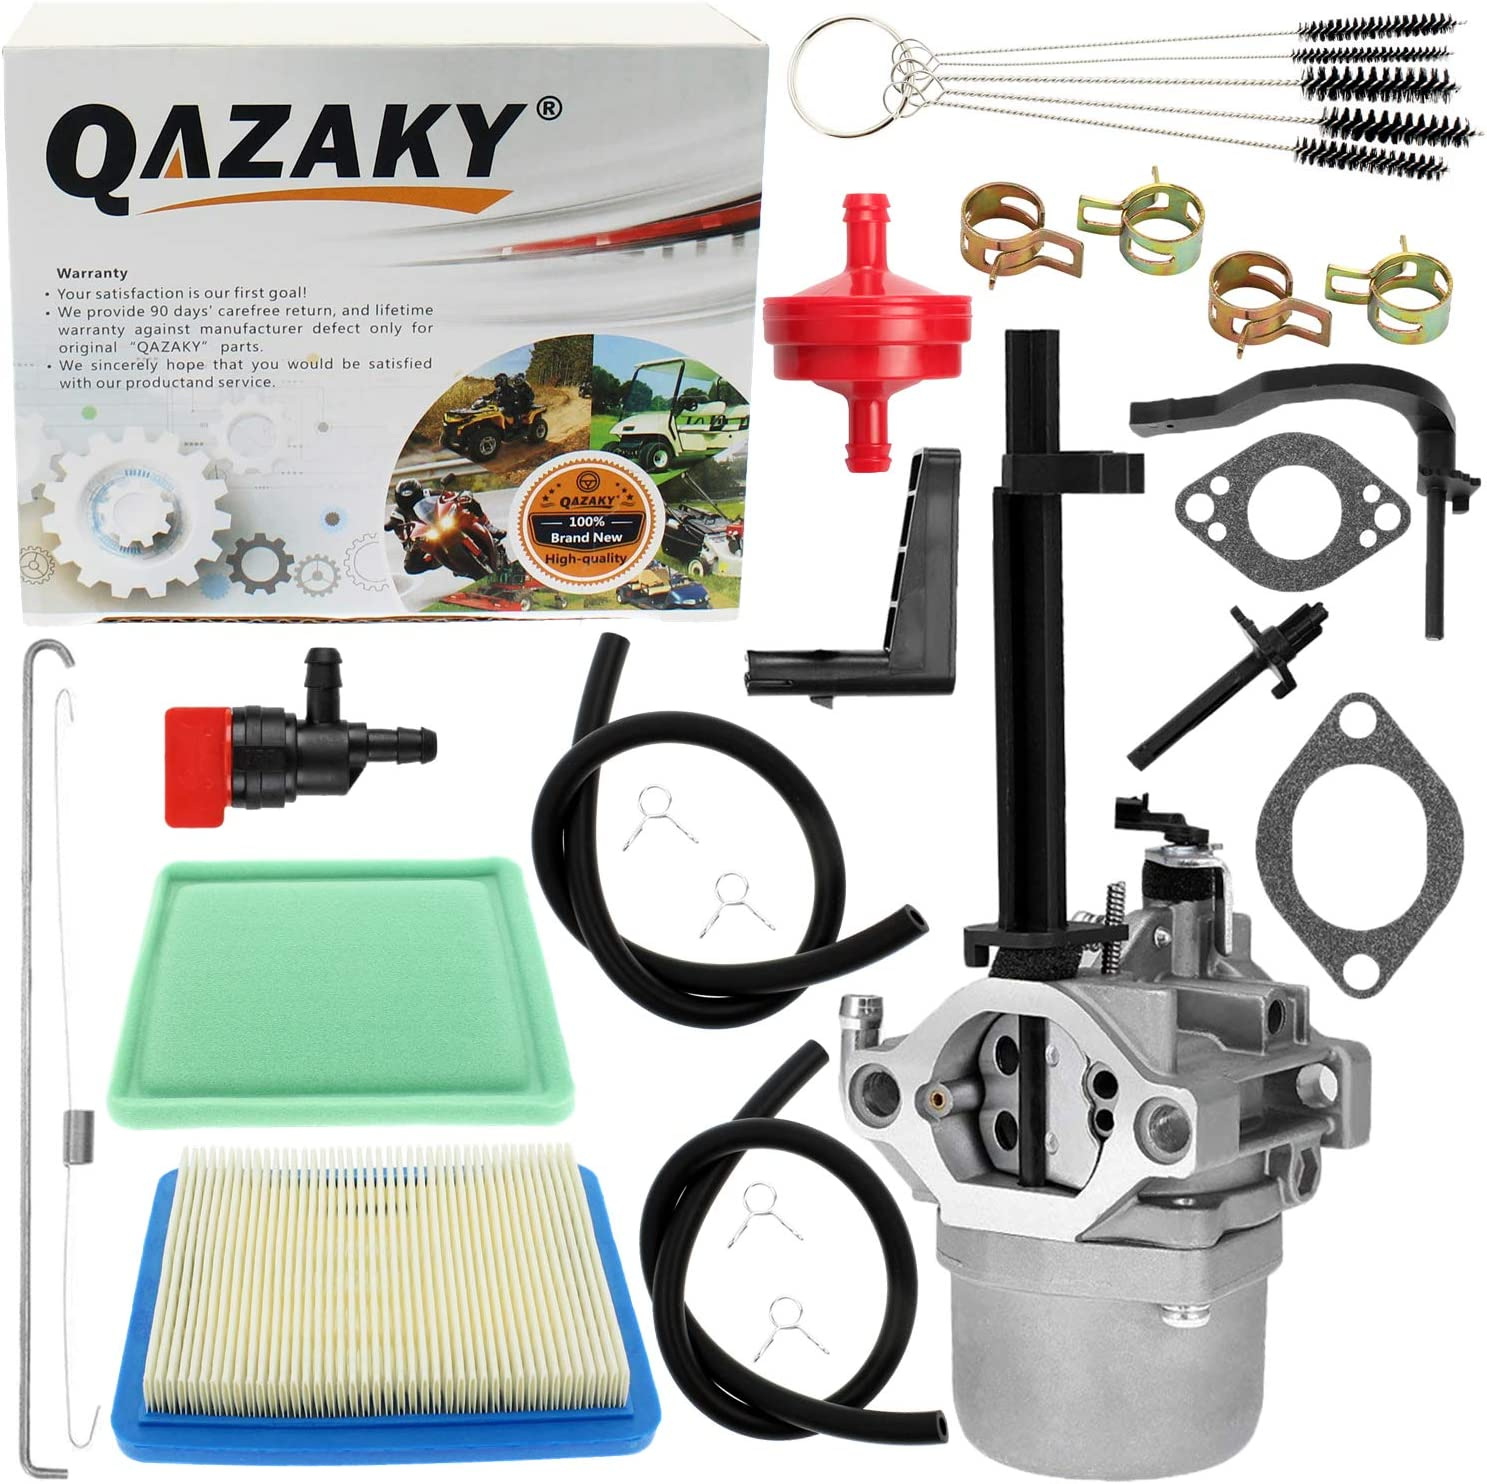 QAZAKY Carburetor Air Filter Replacement for Briggs Stratton 342cc 10HP Generator 030235 Coleman Powermate 5000 5550 5600 6200 6250 8550 8600 GenPower 305 Troy Bilt 1450 Series Engine Craftsman Nikki